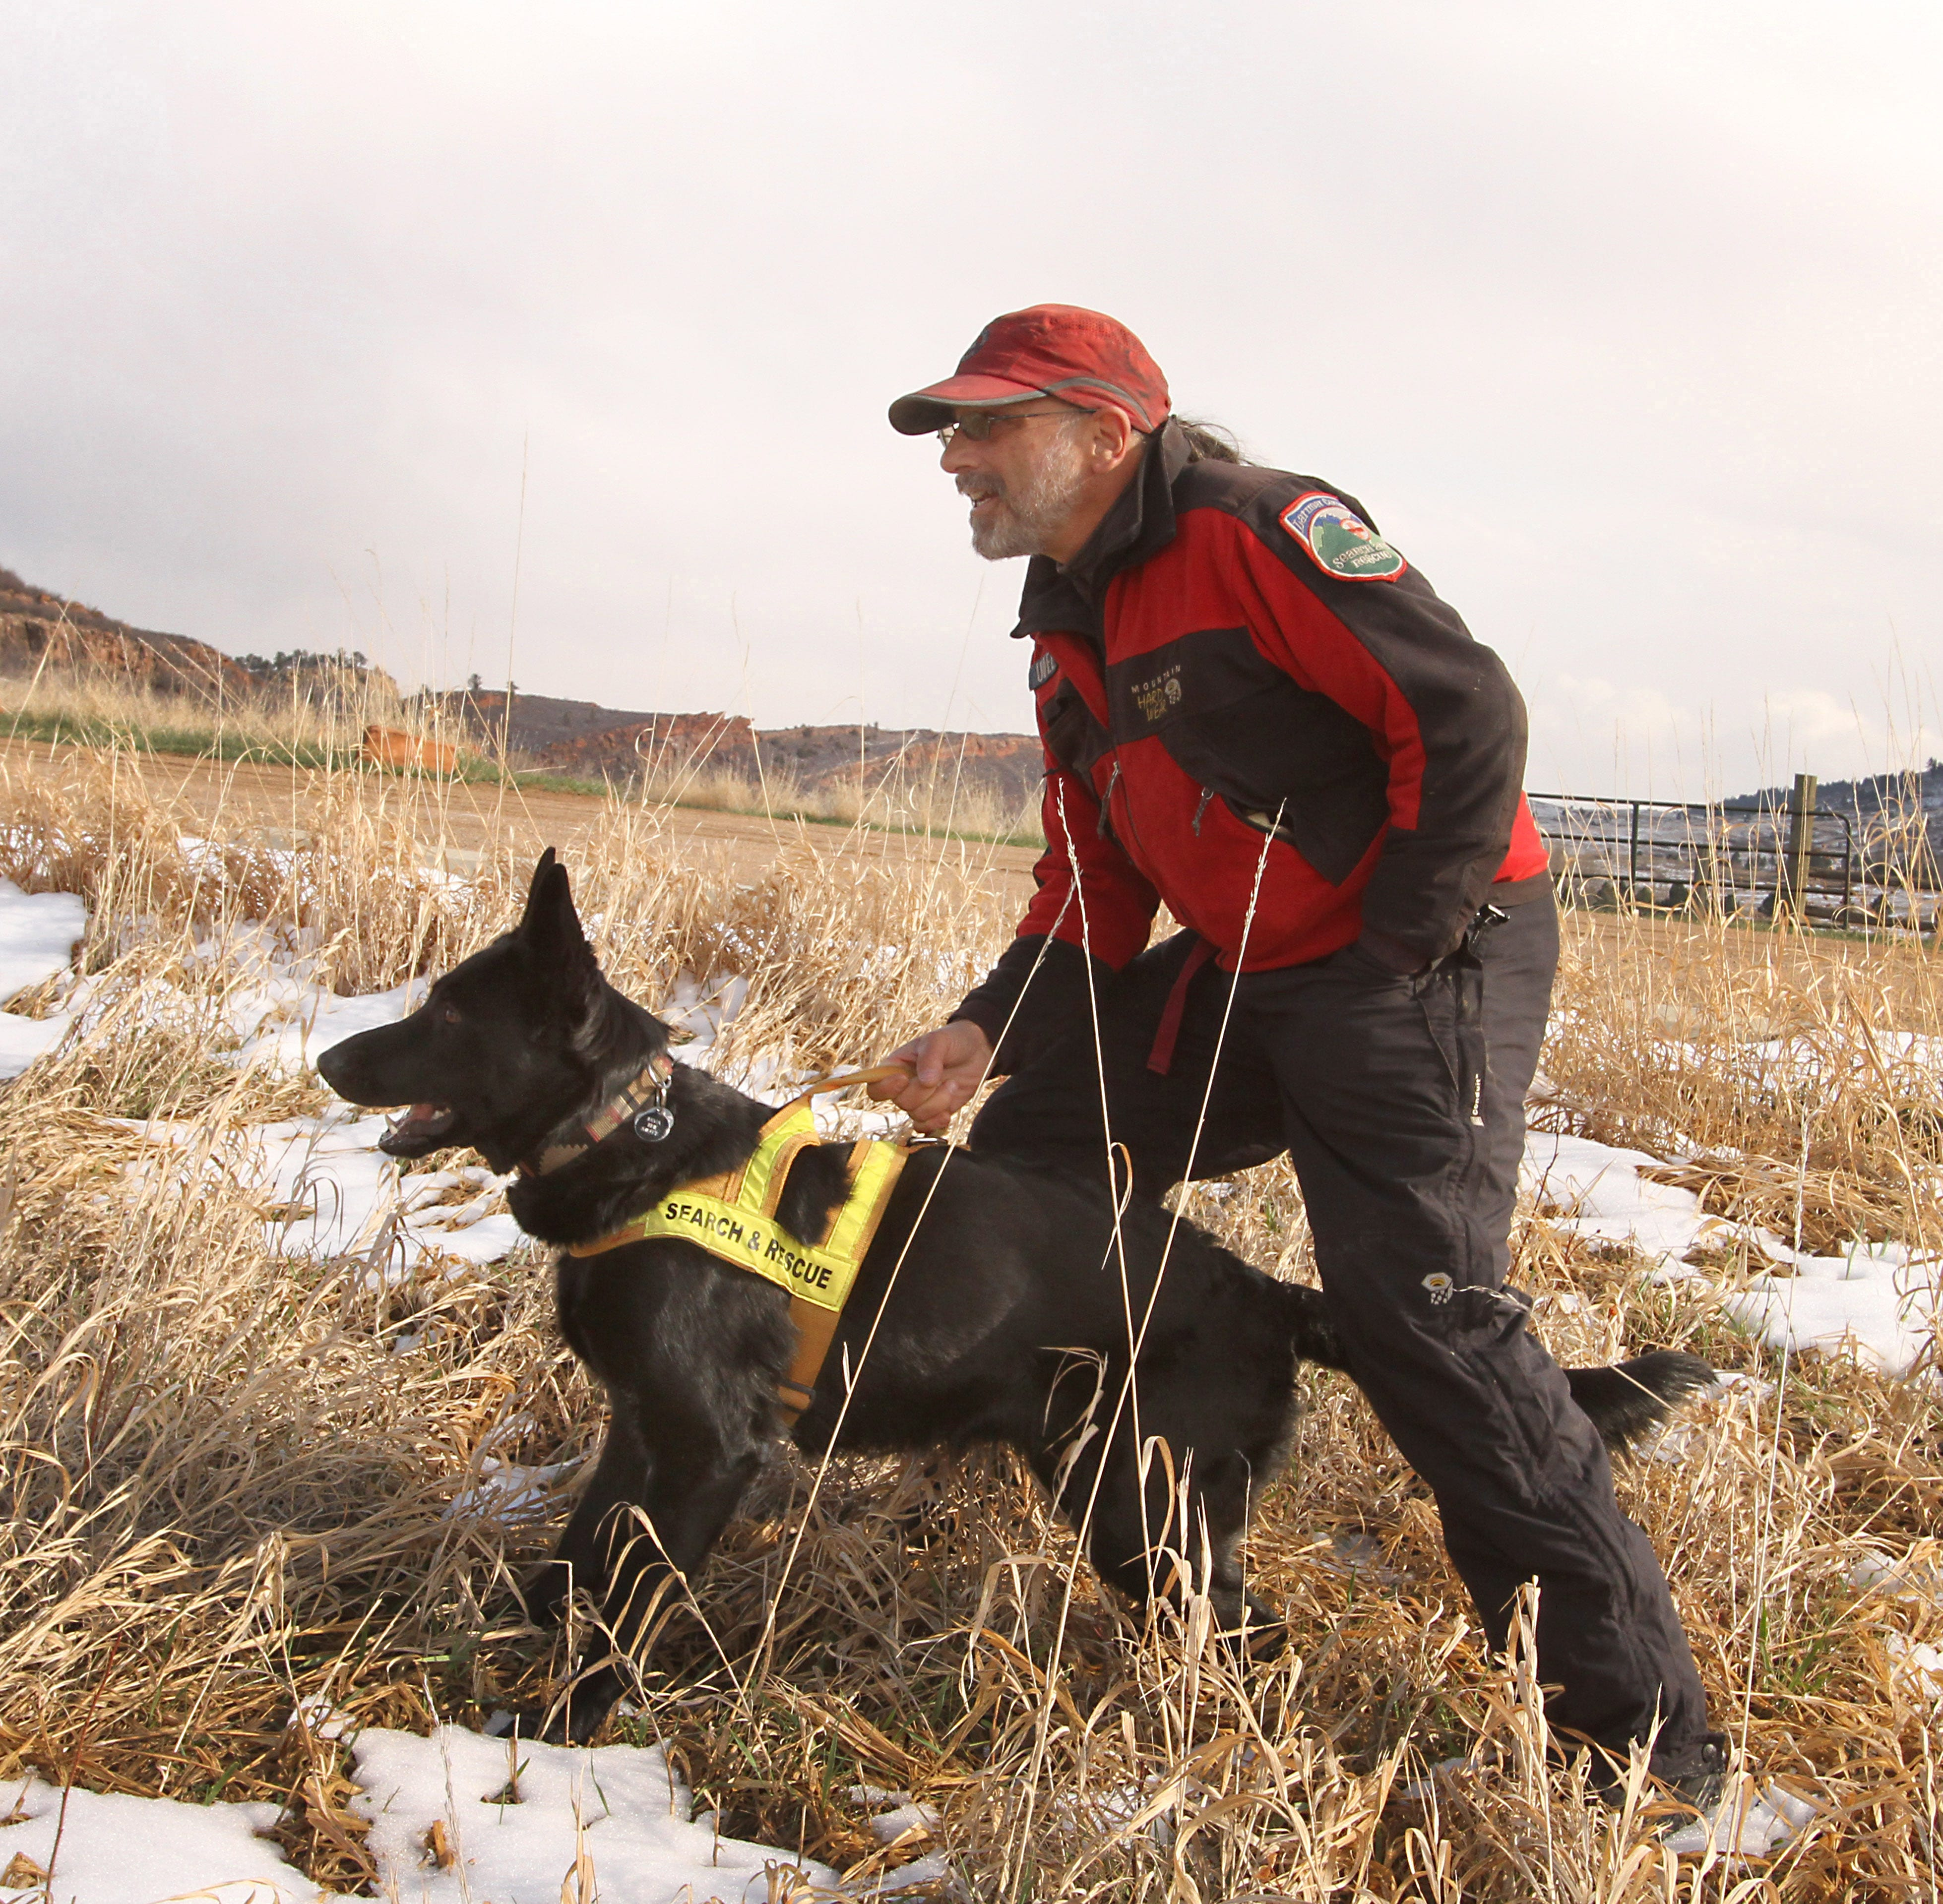 40 years of search and rescue: How Larimer County SAR training, technology evolved